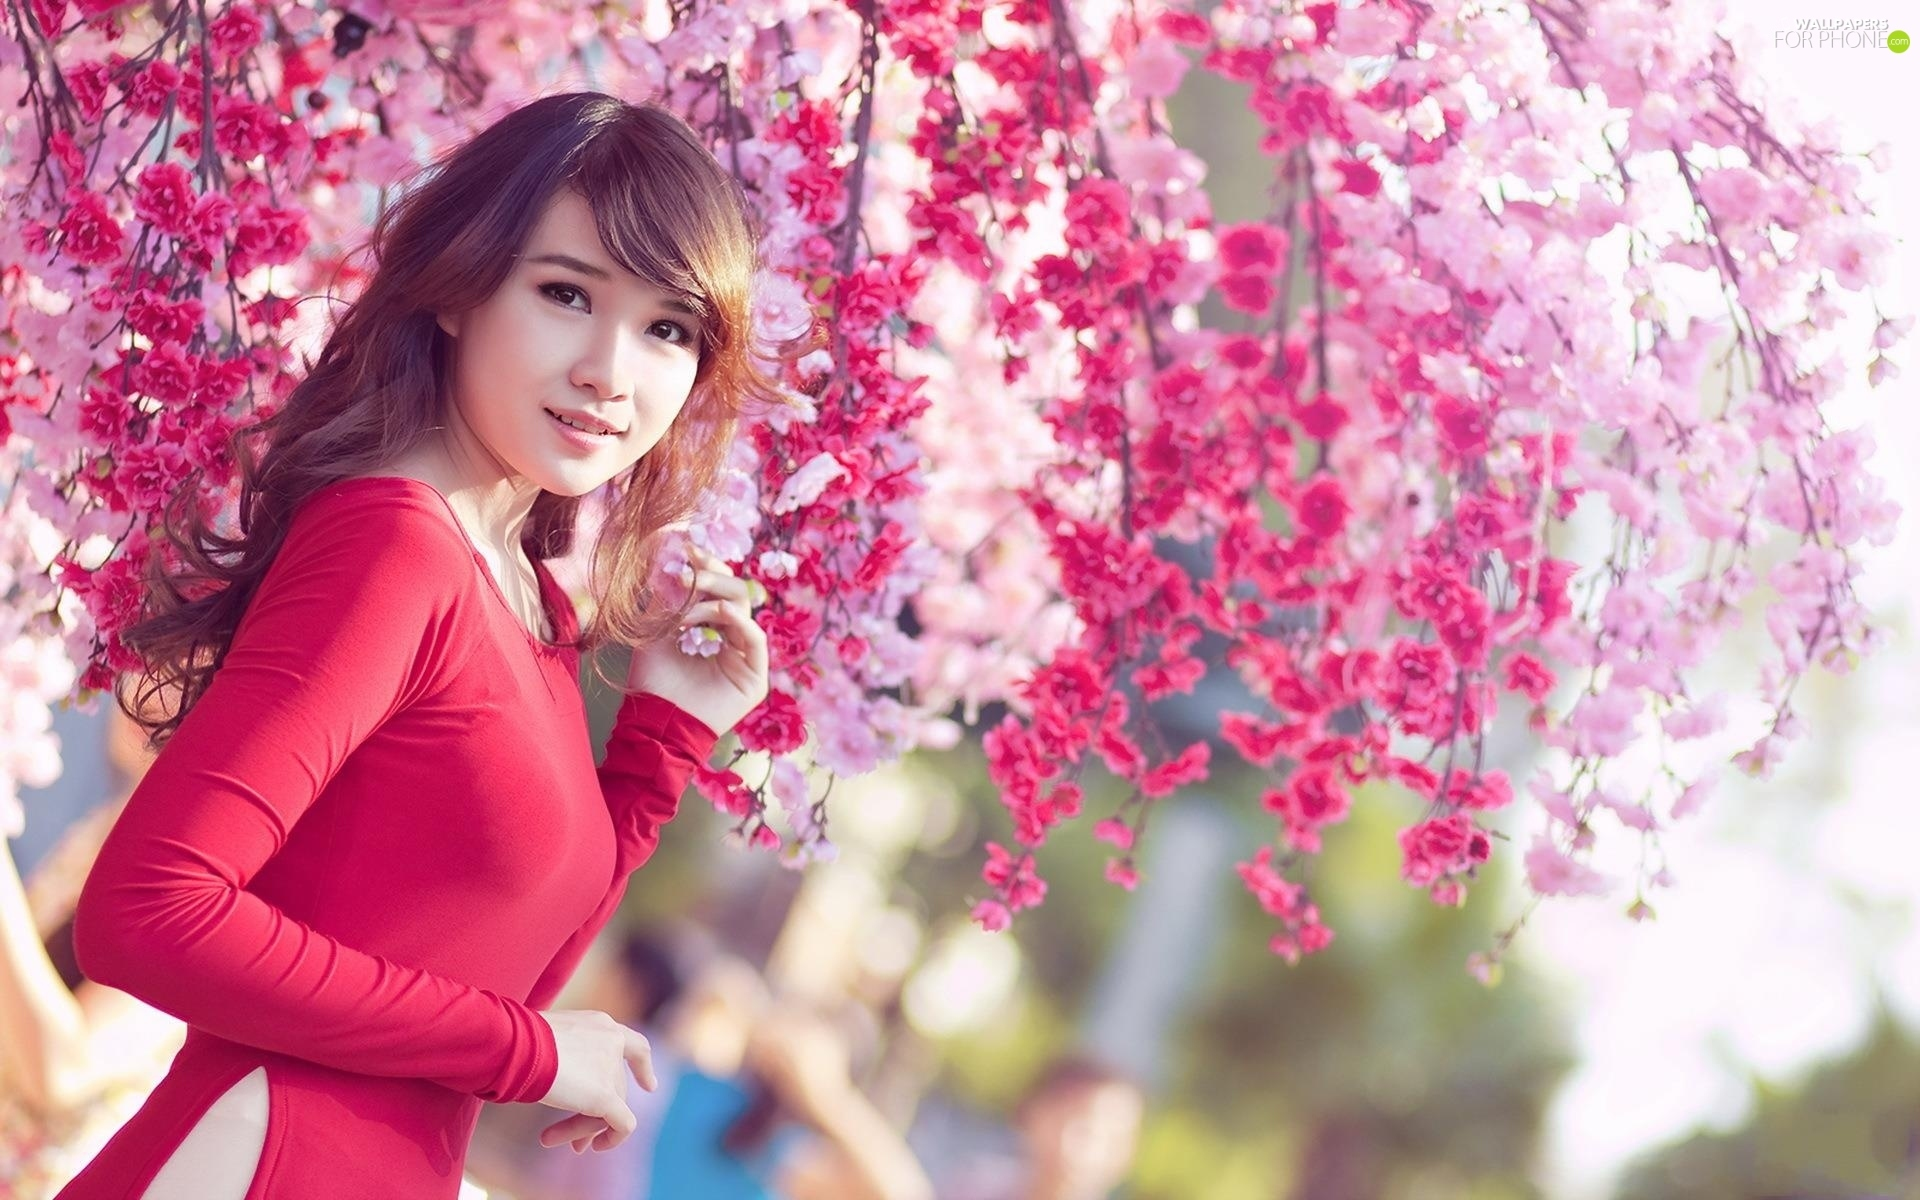 trees, Garden, Japanese girl, flourishing, Smiling